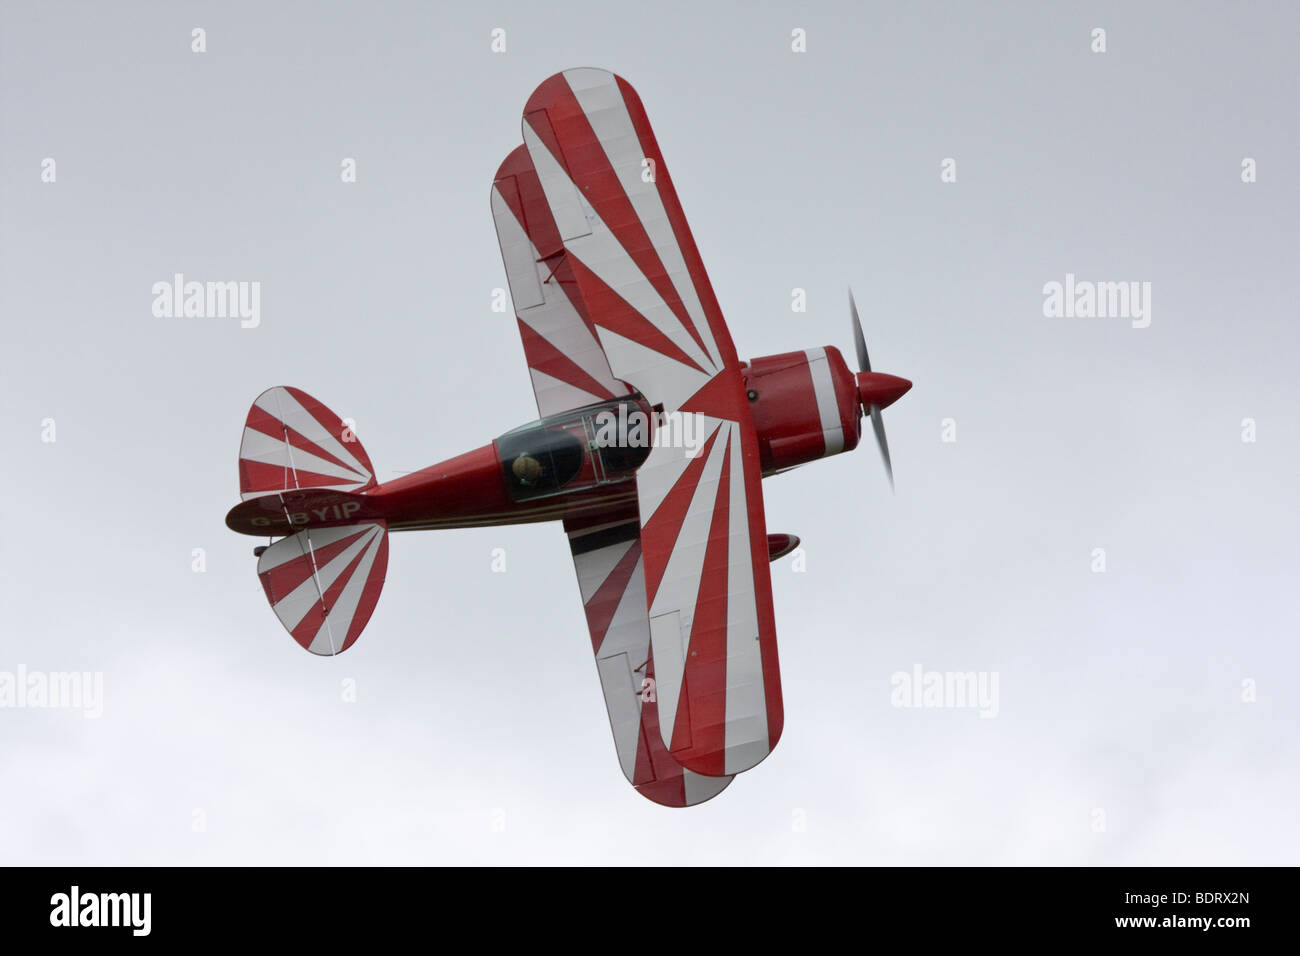 Pitts S-2A Special two seat aerobatic biplane - Stock Image